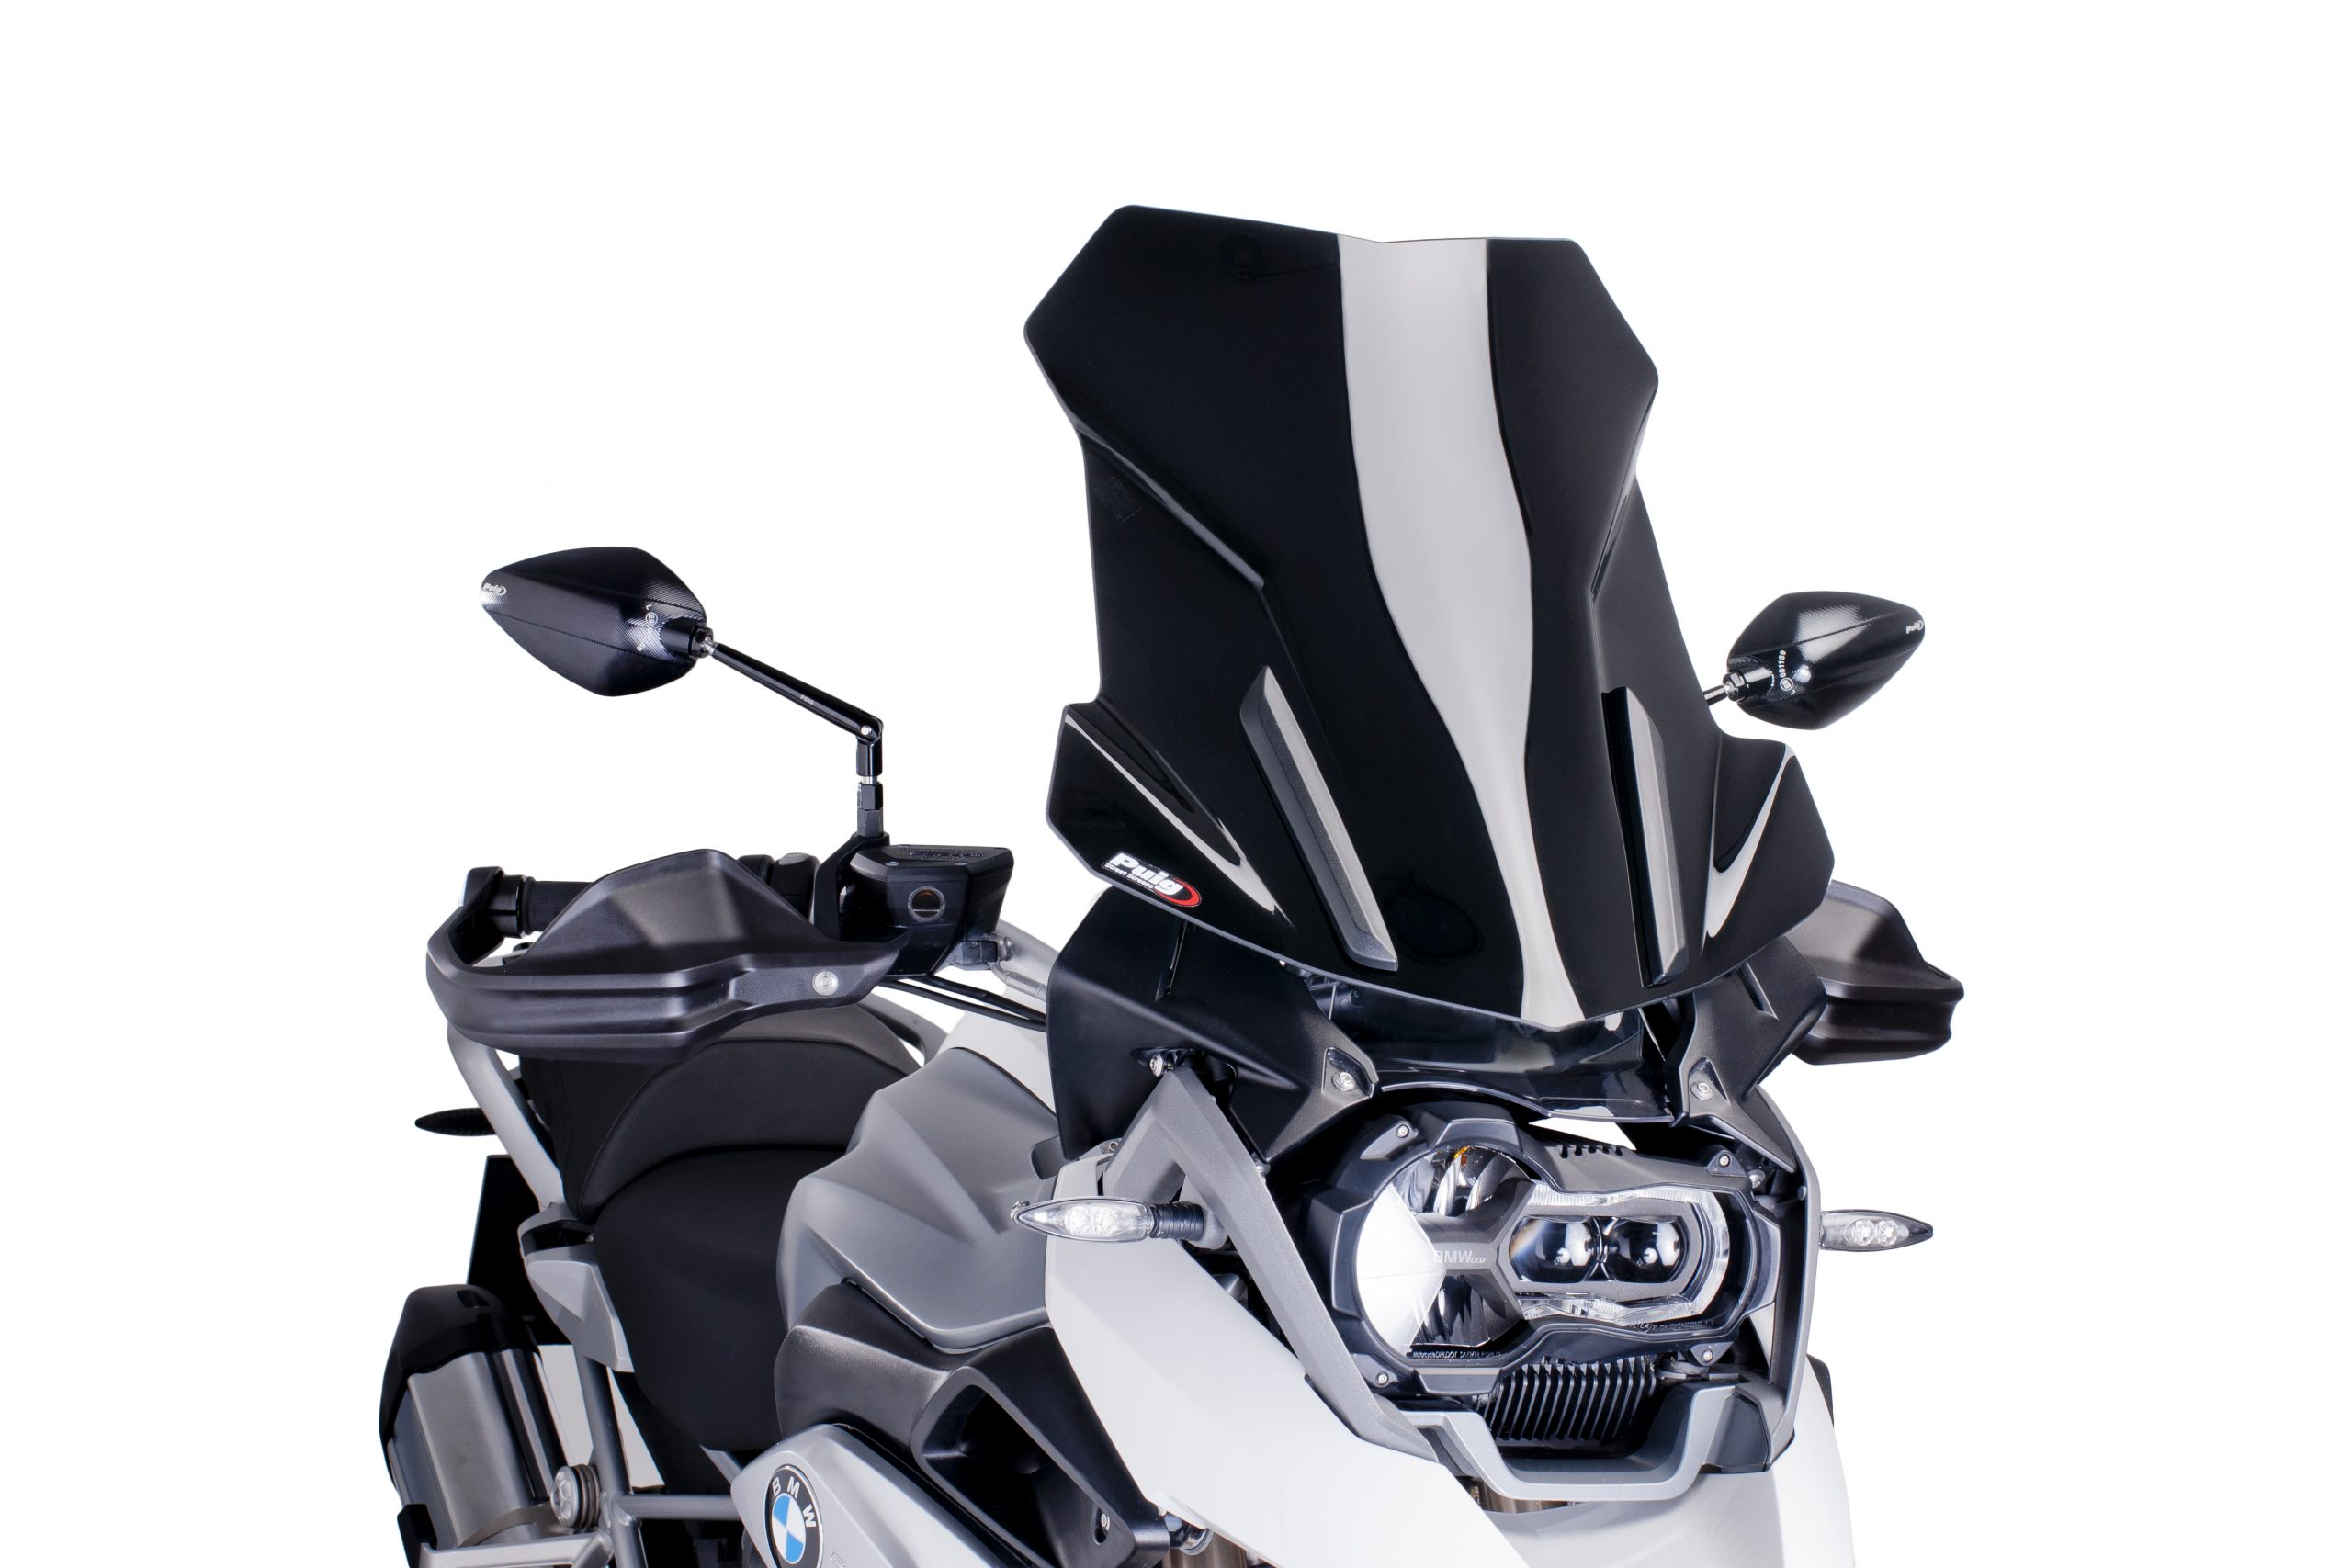 Cúpula Touring BMW R1200GS LC (2013-2017) Puig Color Negro - Ref. 6486N